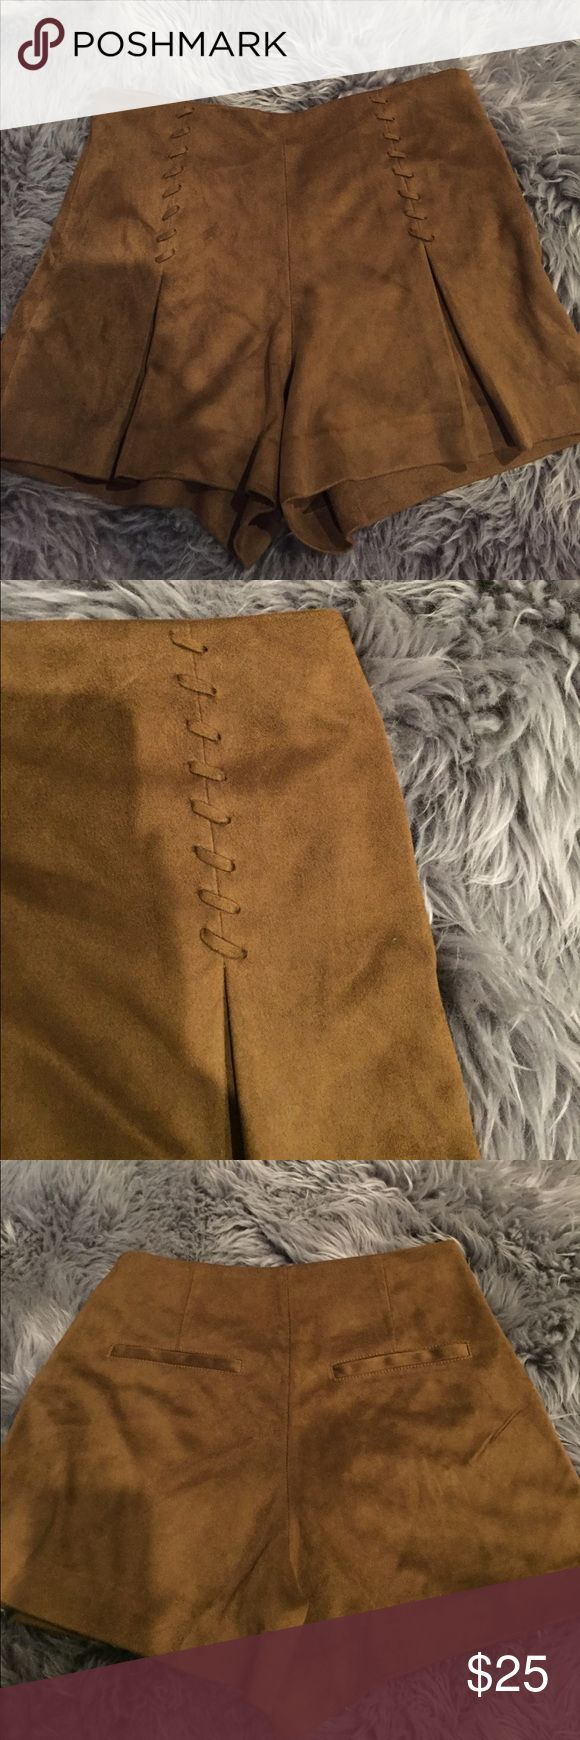 Brown suede shorts Adorable pleated brown suede shorts from MANGO! They have a lace up detailing on the front, a side zipper, and fake pockets in the back. They are SO CUTE!! Size 2 and I'm perfect condition! Mango Shorts